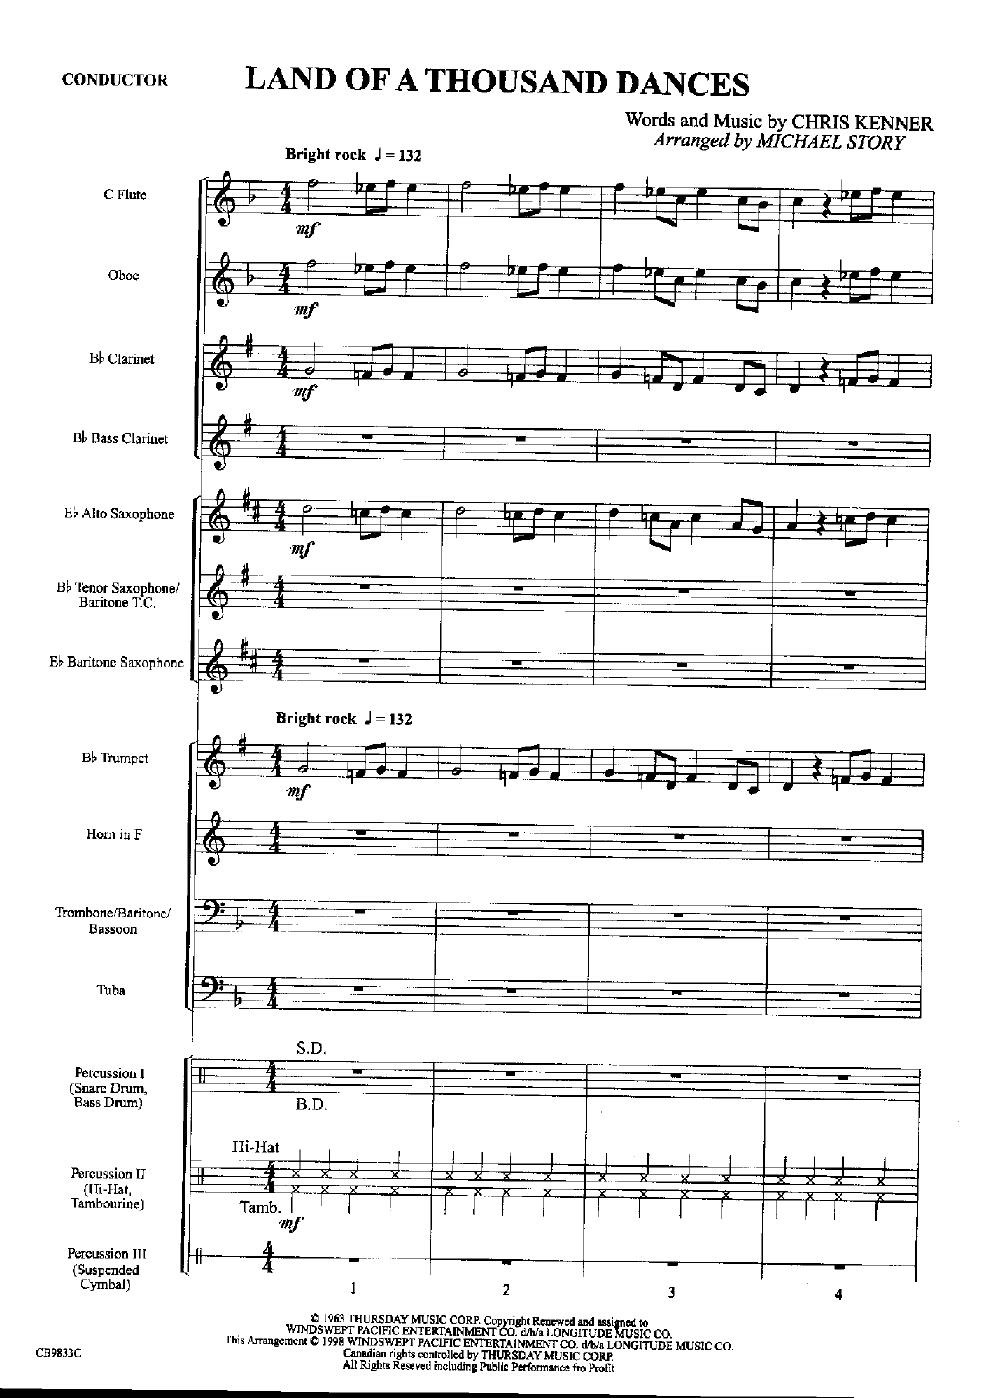 Land of a Thousand Dances arr  Michael Story| J W  Pepper